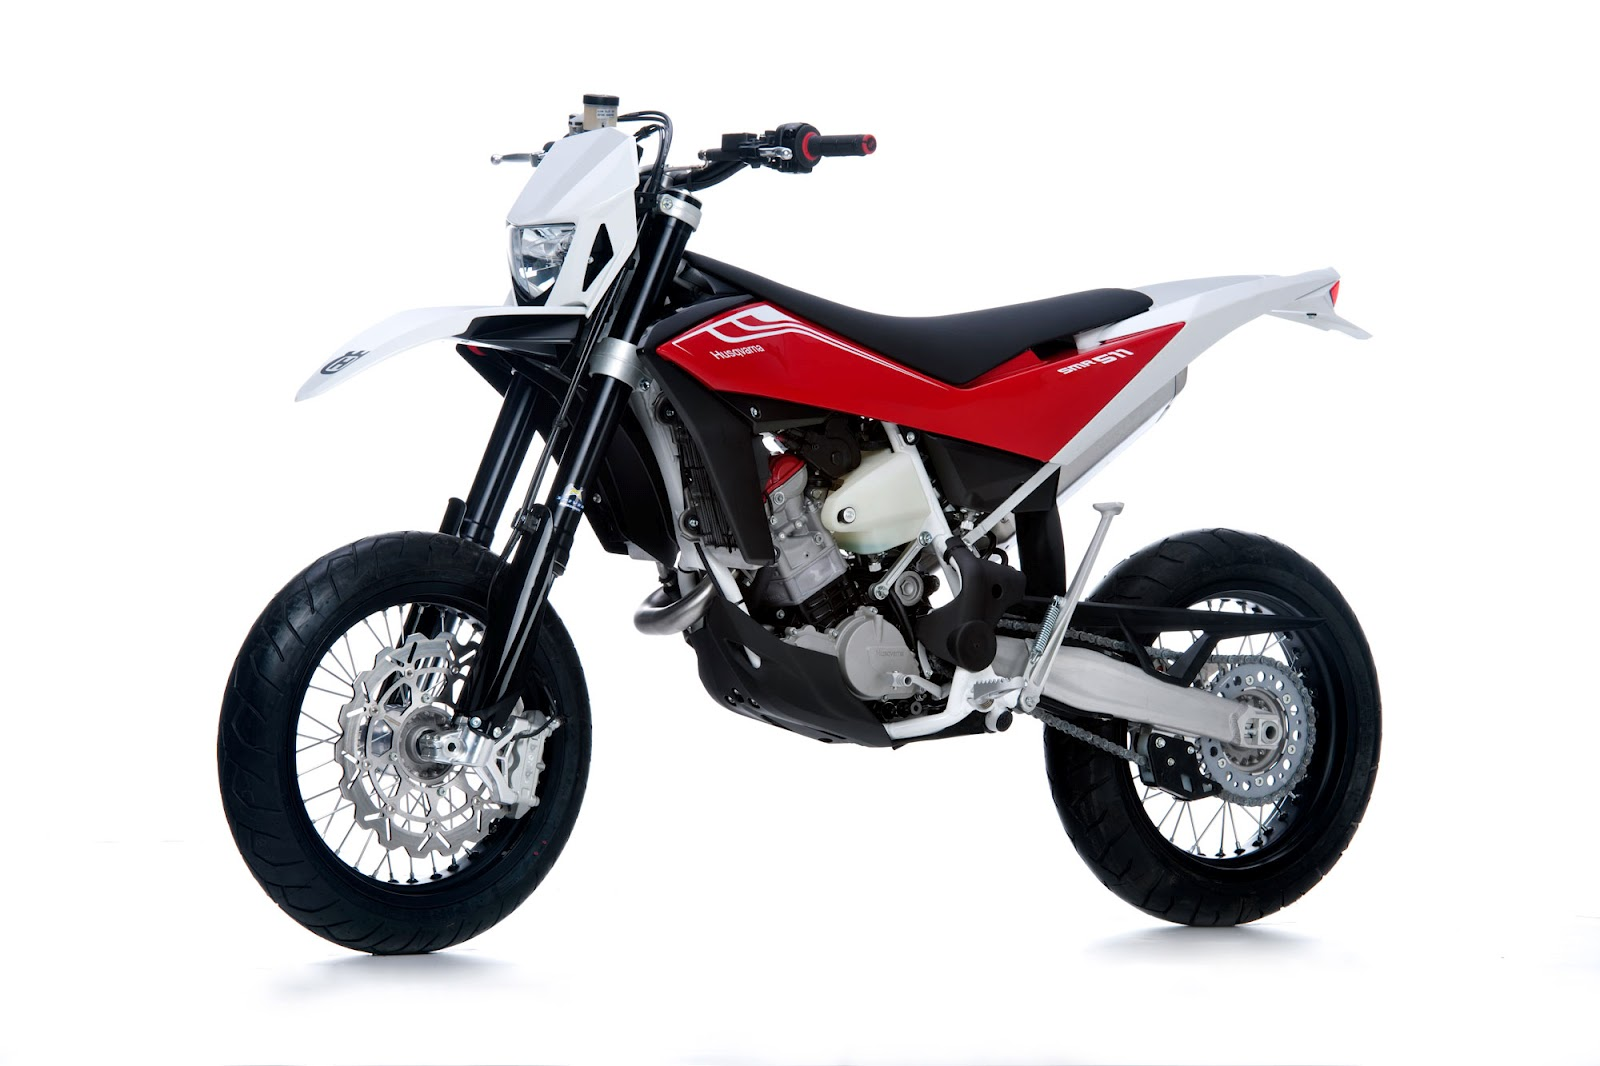 2012 husqvarna smr 511 review motorcycles specification. Black Bedroom Furniture Sets. Home Design Ideas